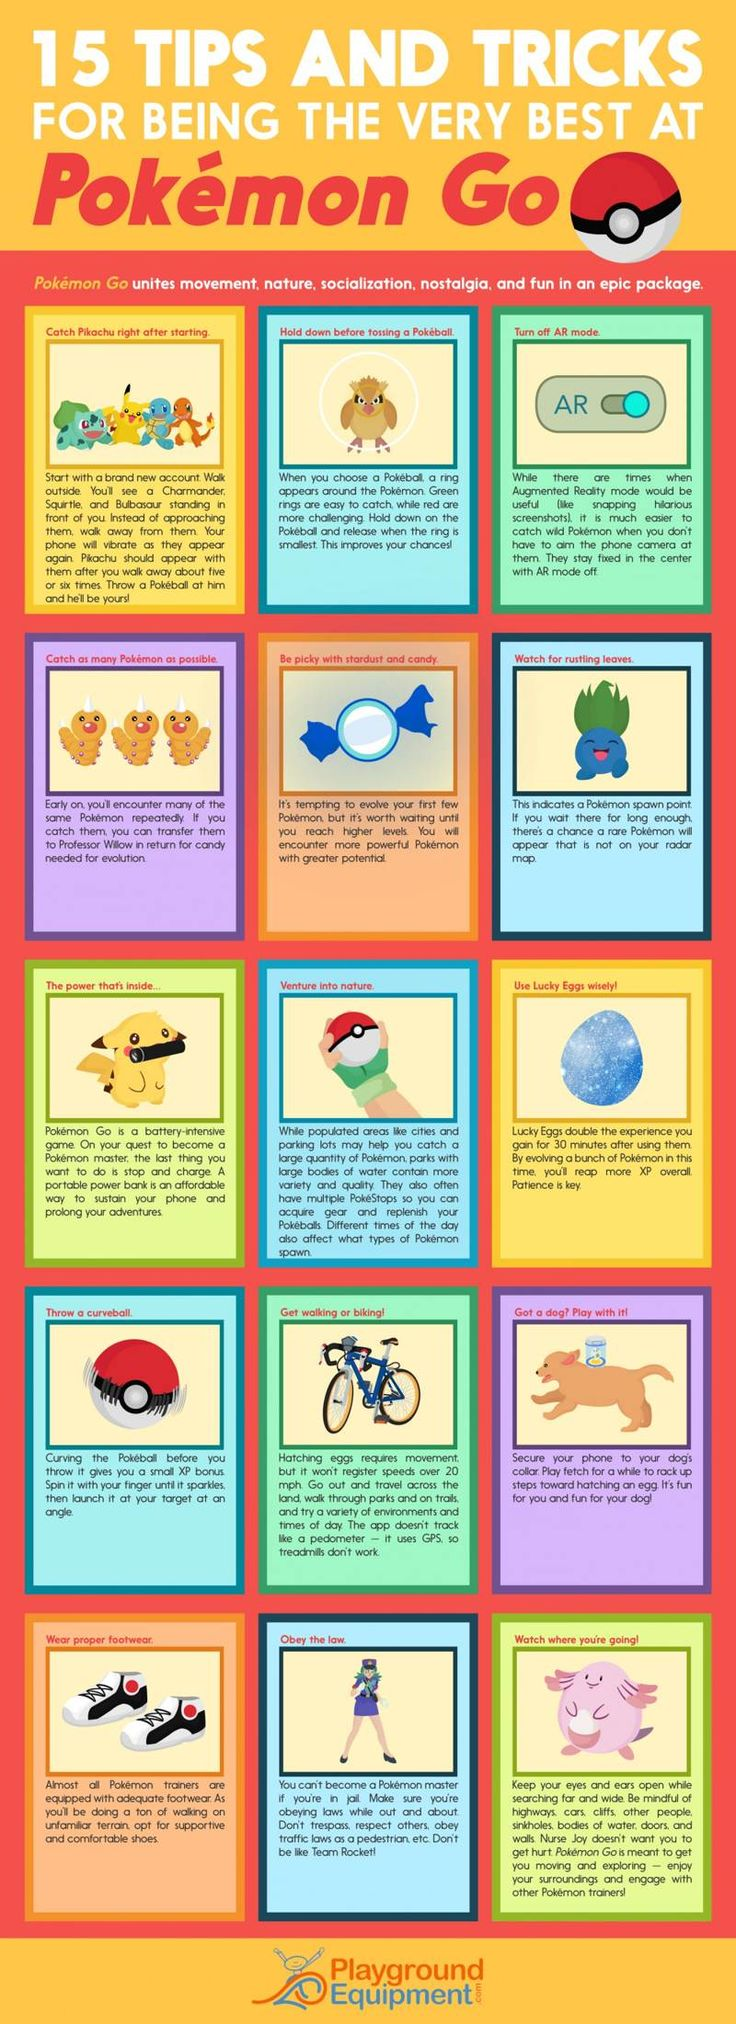 Handy Pokemon Go tips - http://www.popularaz.com/handy-pokemon-go-tips/